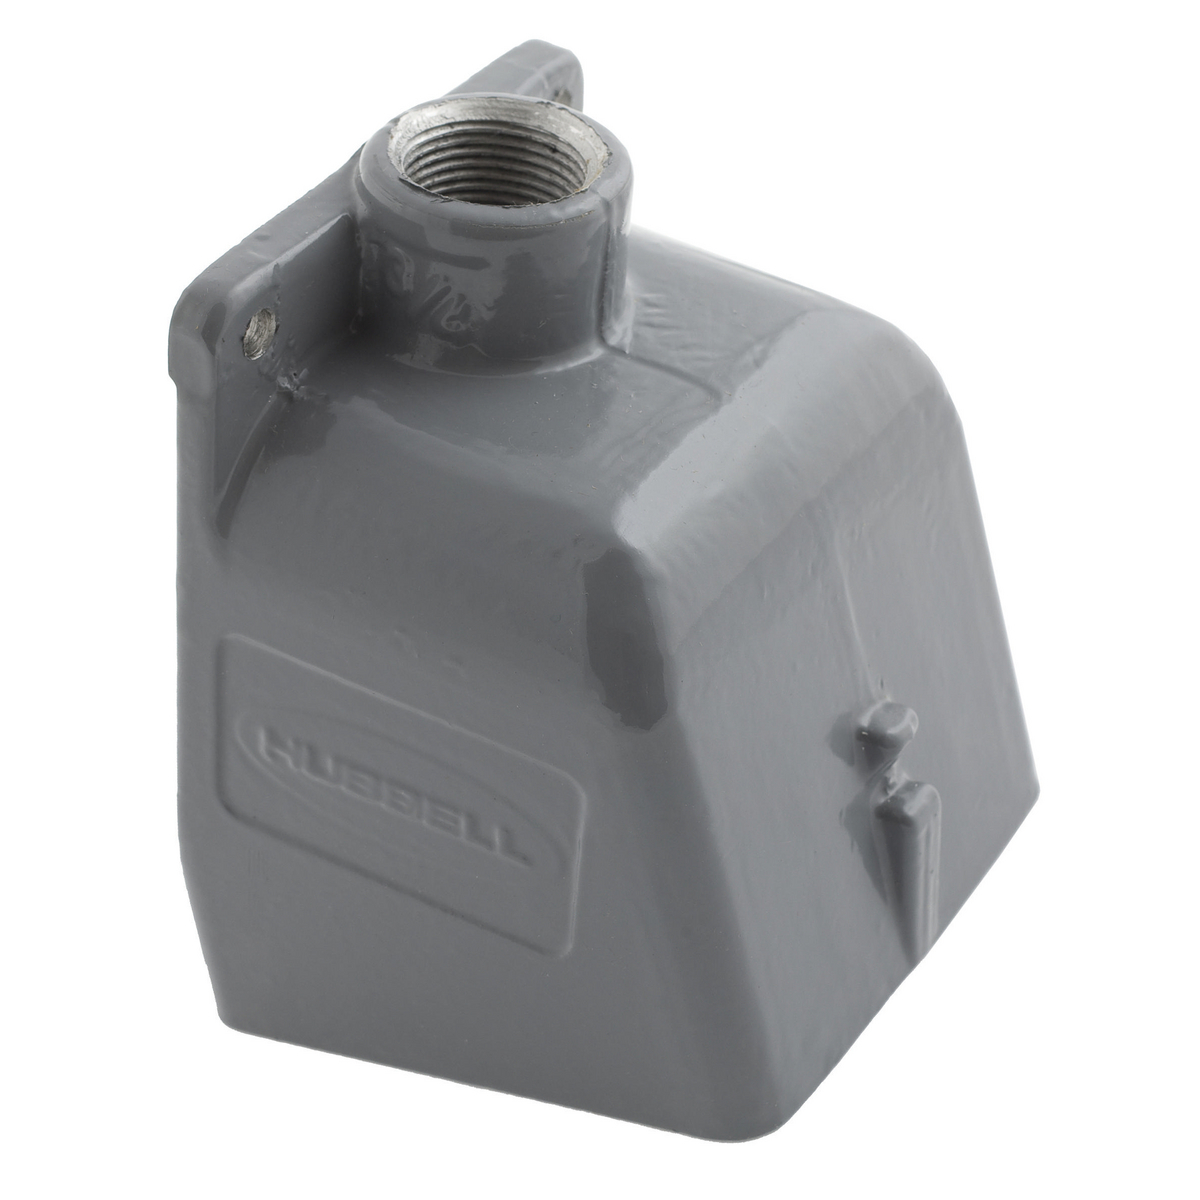 Hubbell BB1001W 1-1/2 Inch Metallic 15 Degrees Watertight IEC Pin and Sleeve Back Box